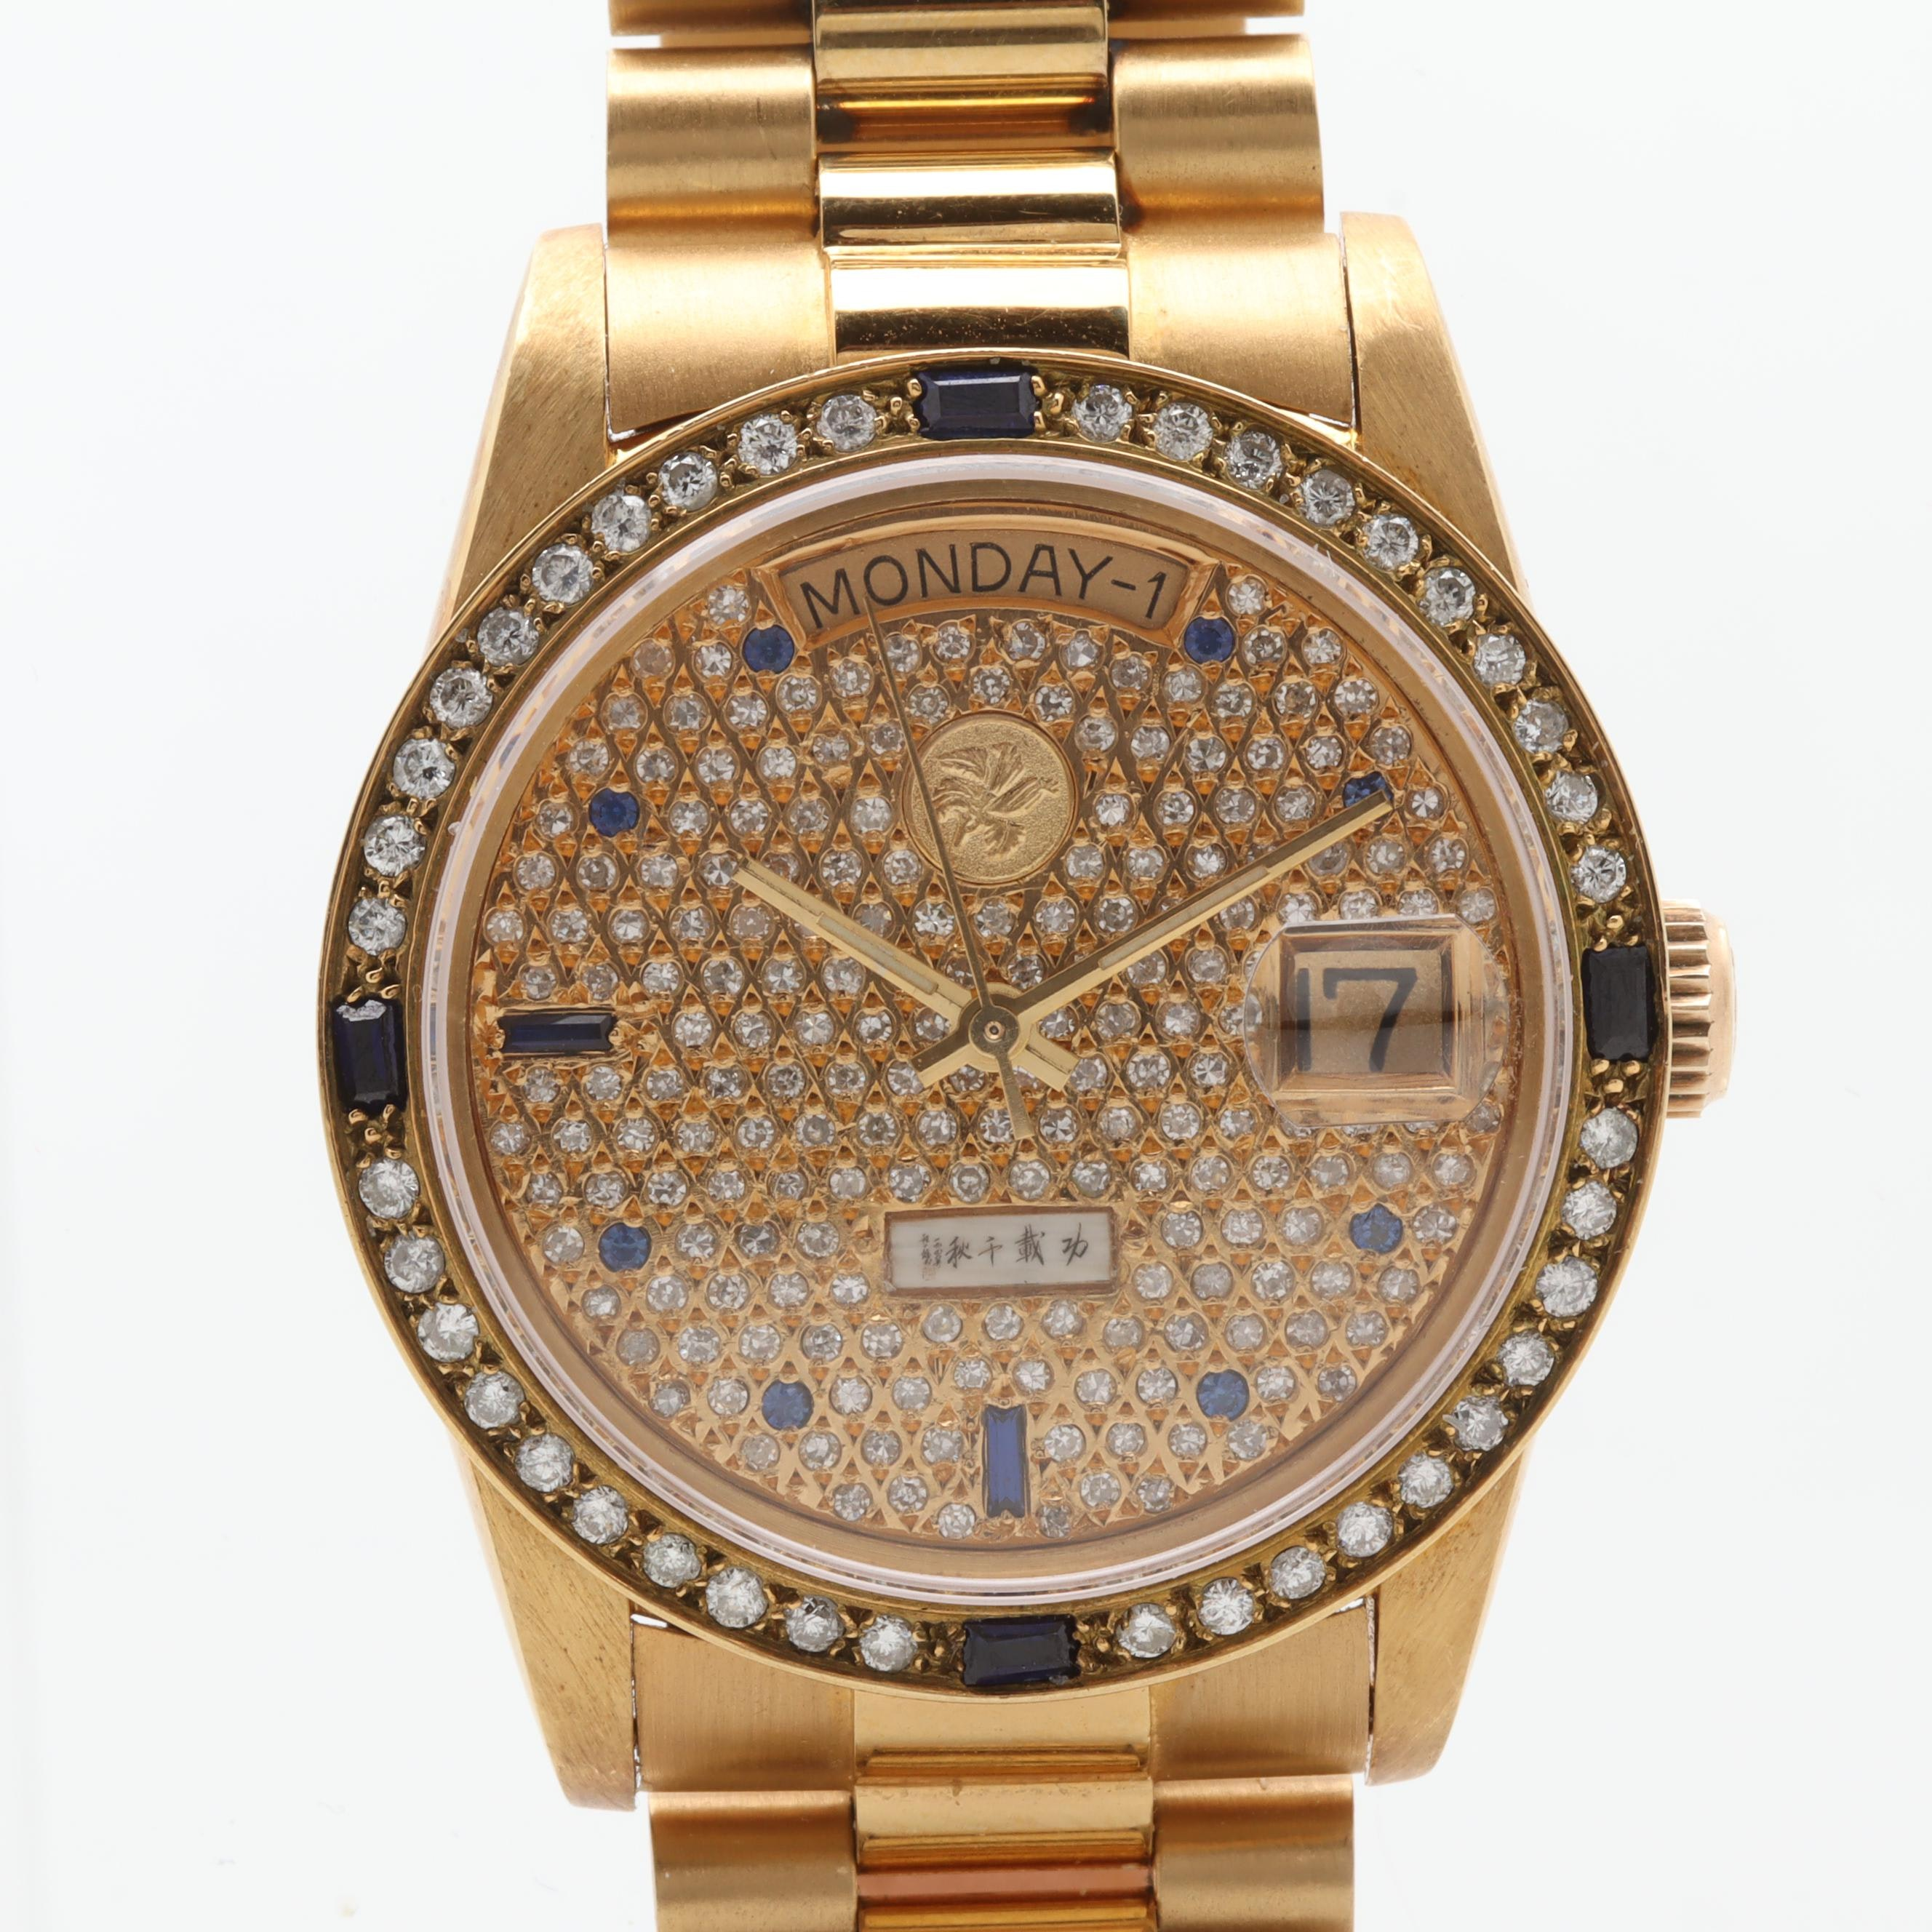 Min Yan Limited 18K Yellow Gold Sapphire and 1.44 CTW Diamond Wristwatch